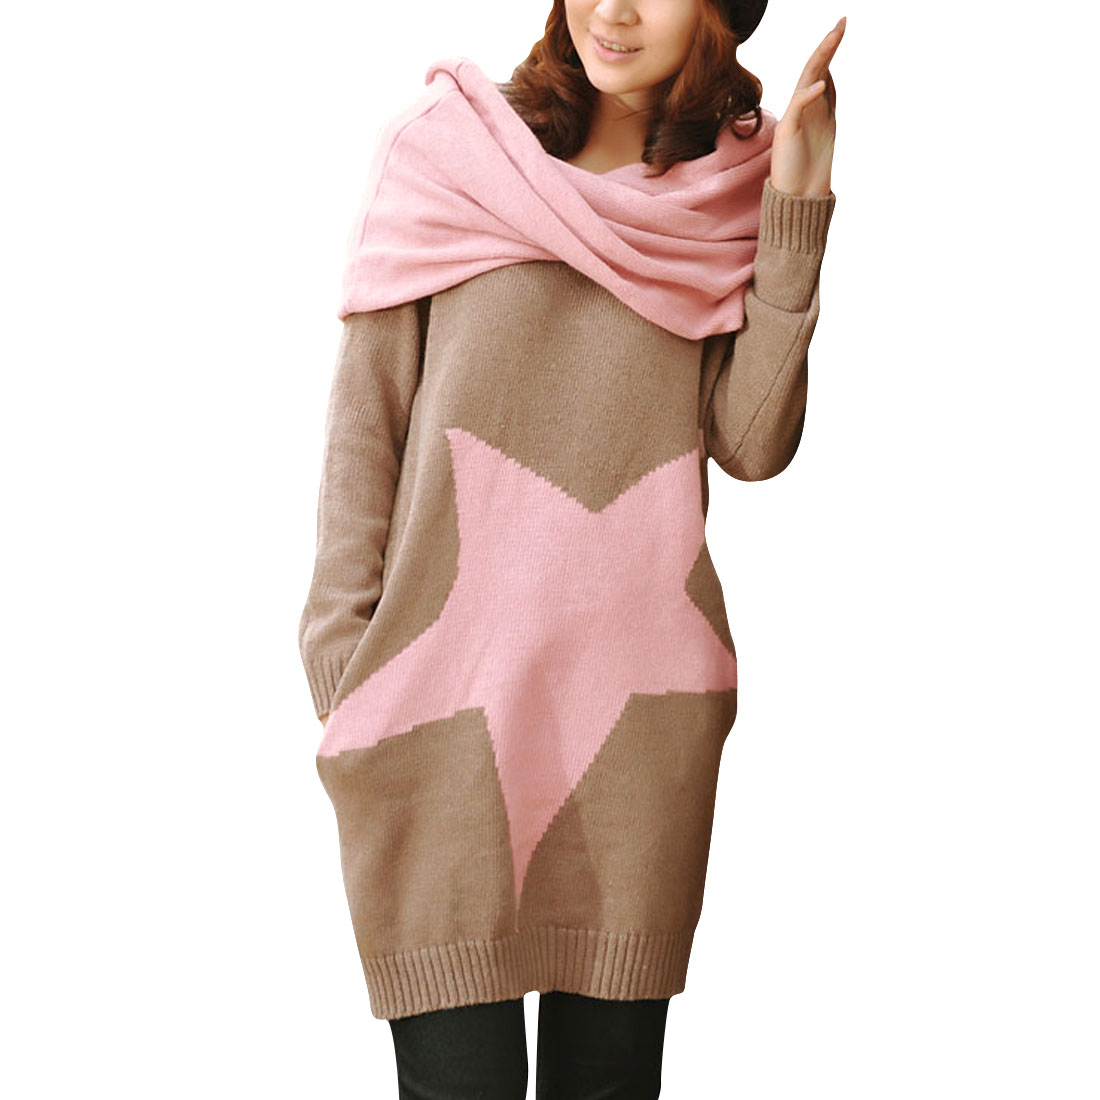 Lady Khaki Pink Crew Neck Long Sleeve Stars Prints Sweater w Knitted Scarves S